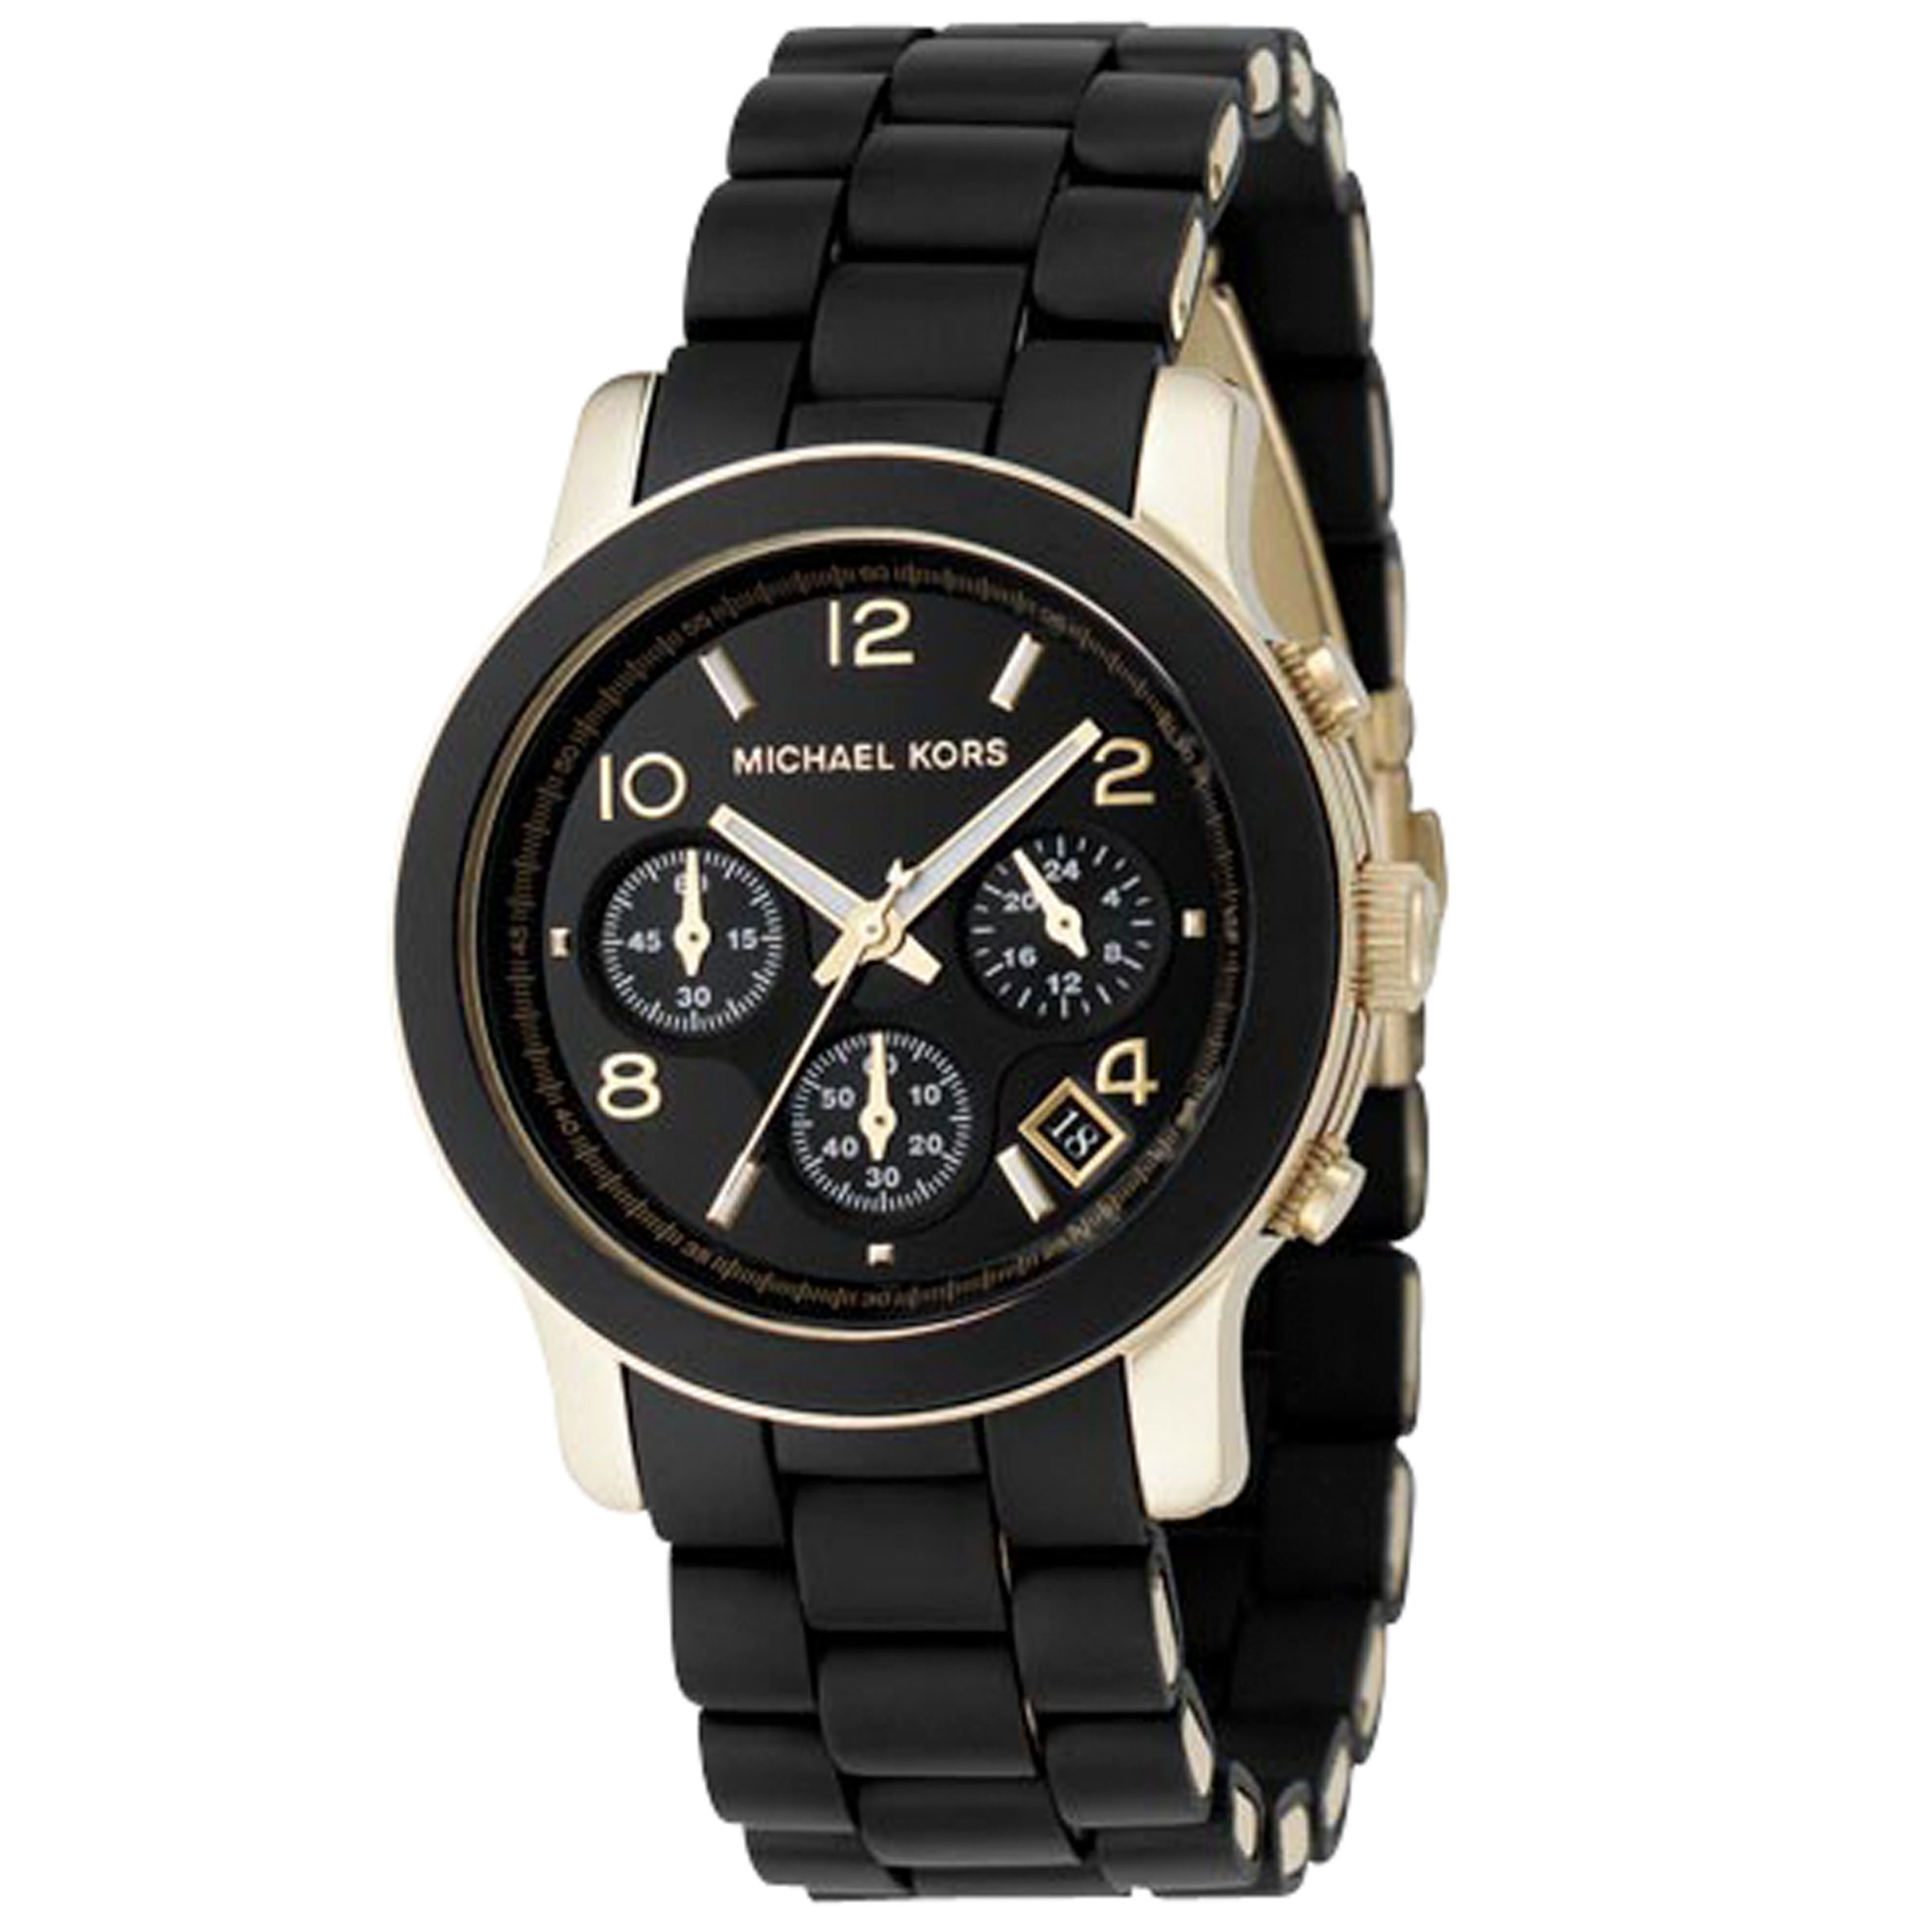 aef7bb4a3b64 Michael Kors MK5191 Women s Chronograph Rubber Strap Watch